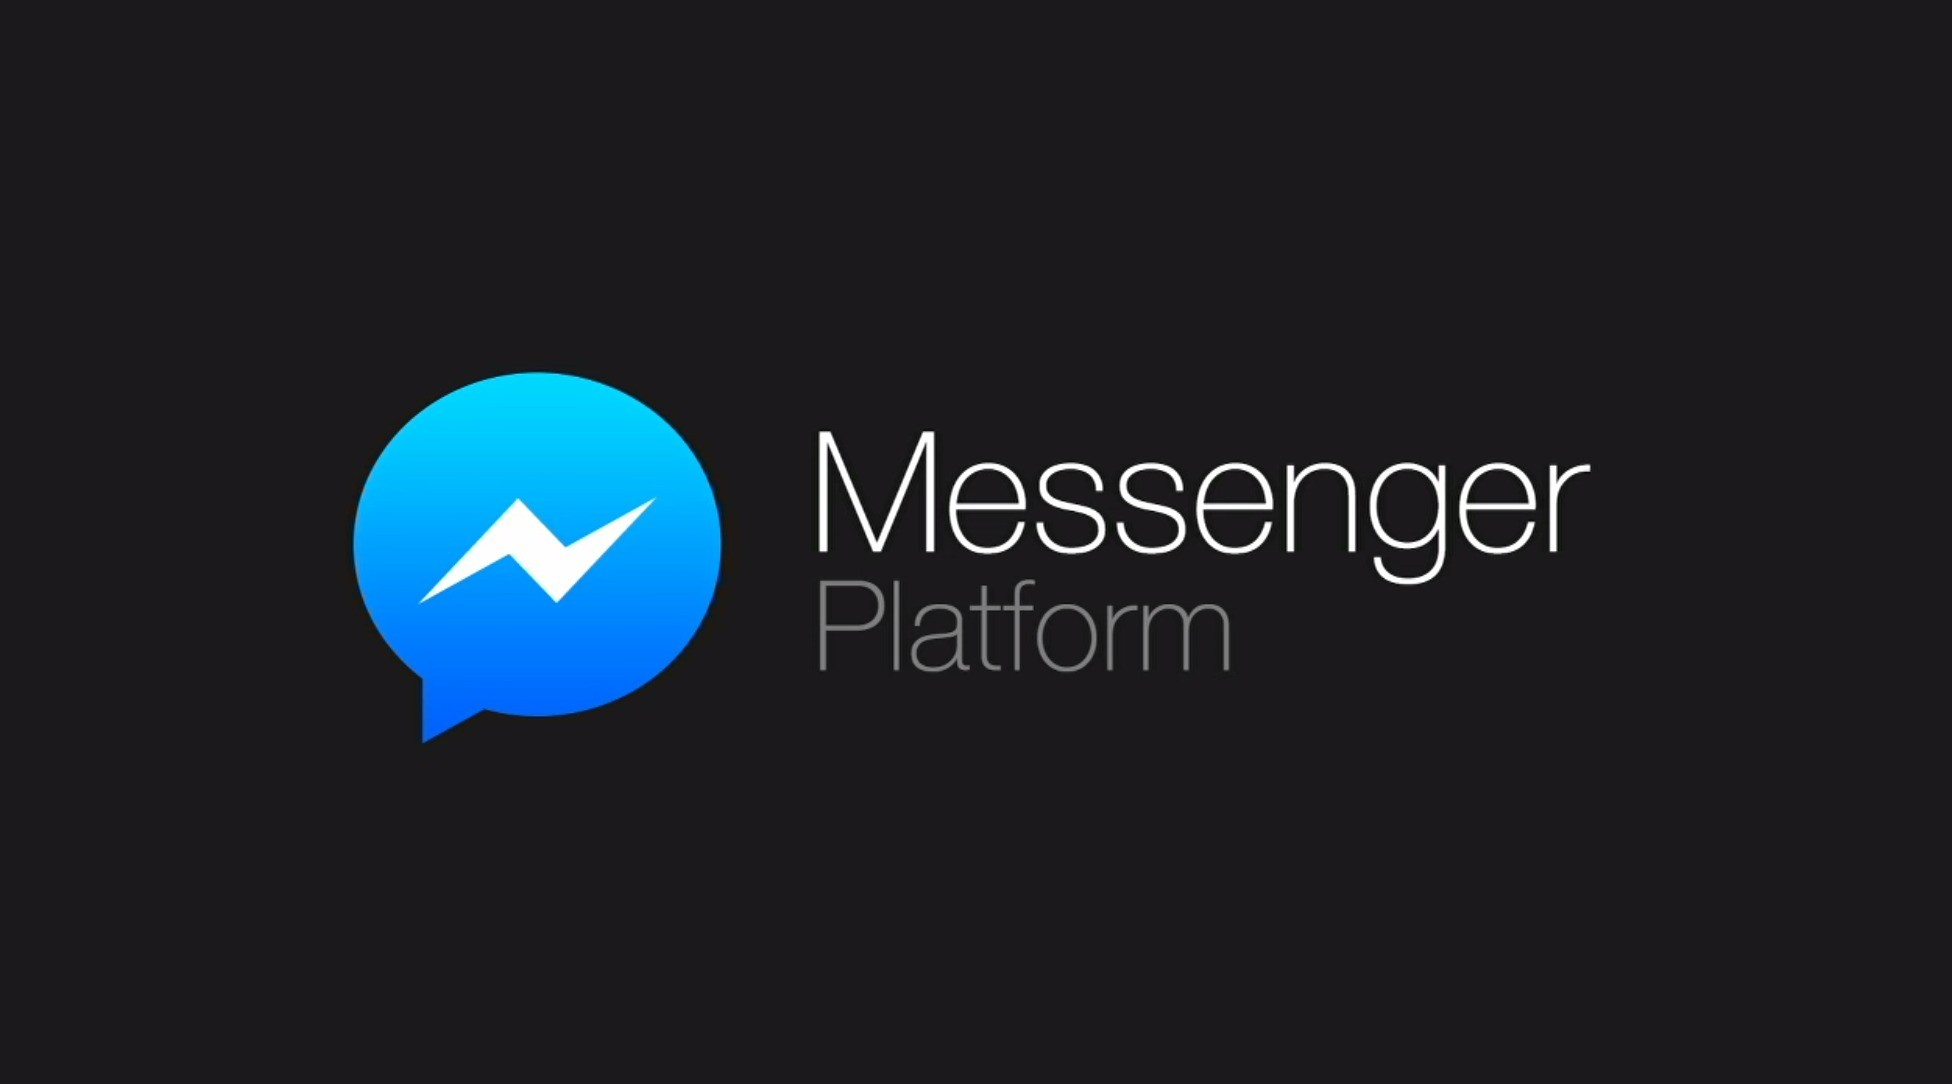 Facebook unveils platform to integrate third-party apps, customer support for businesses into Messenger